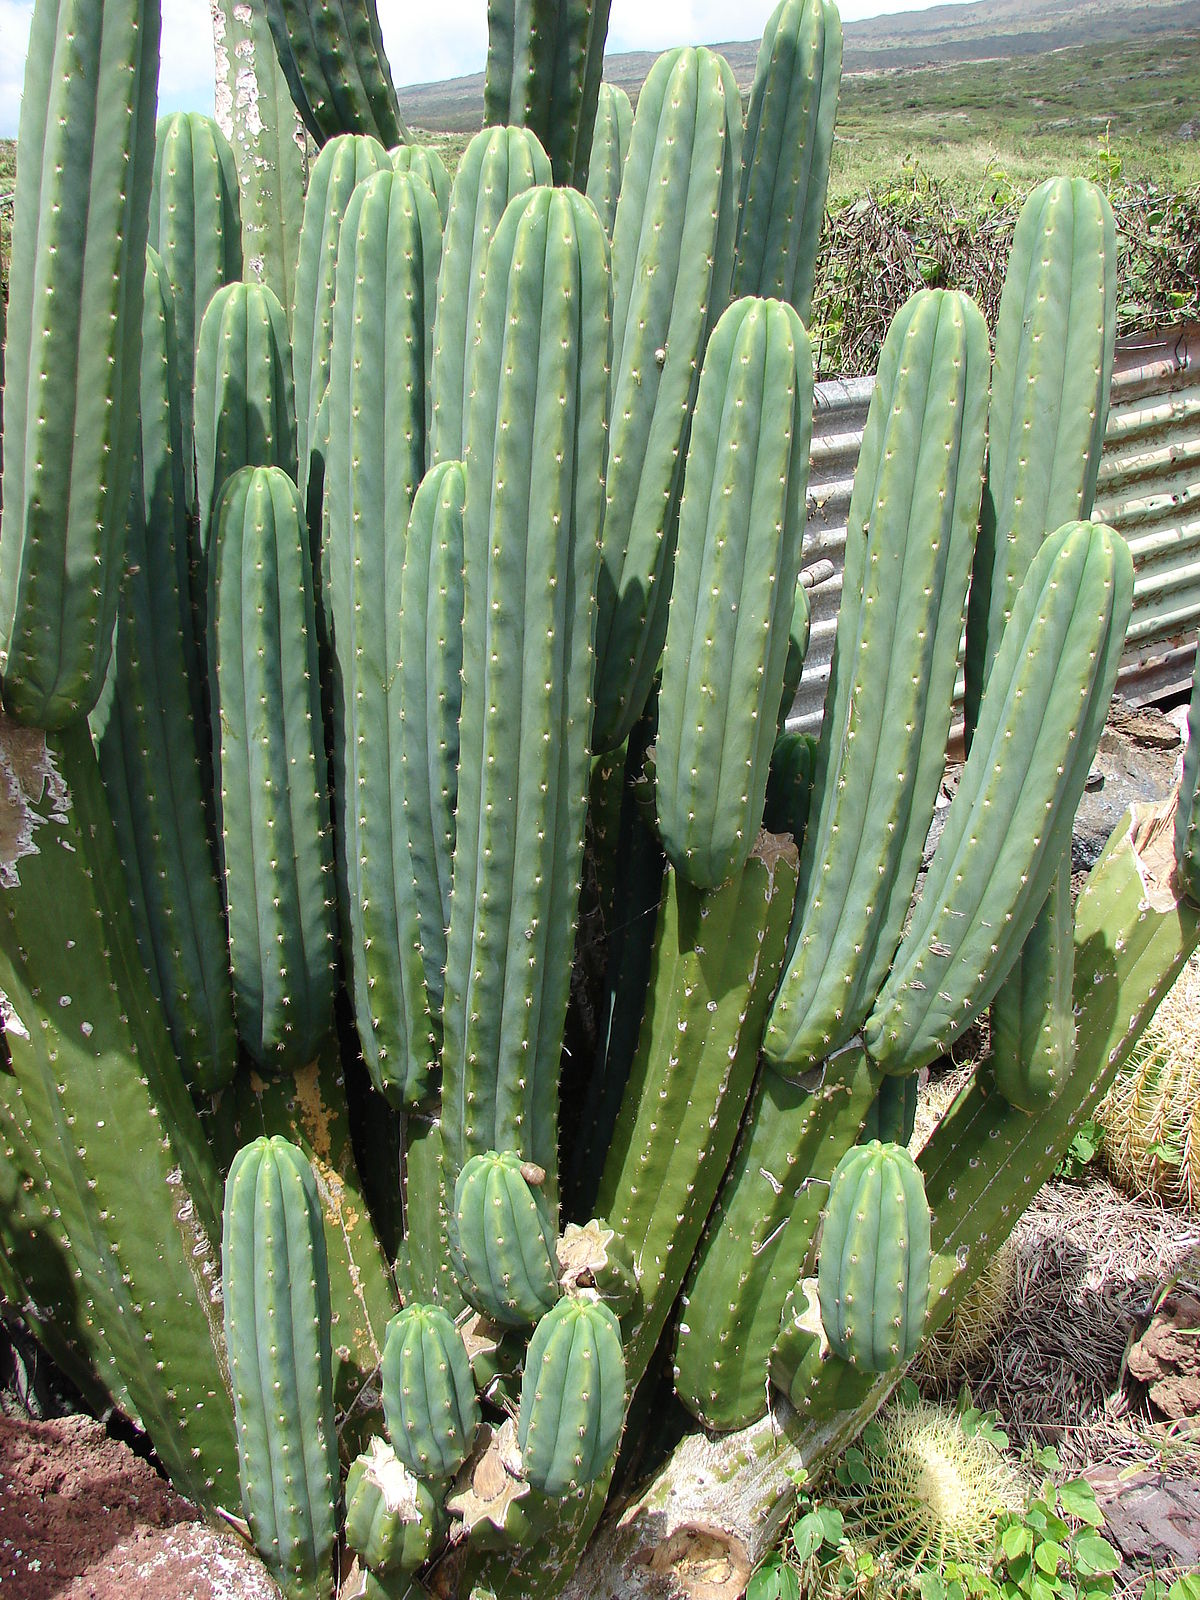 Echinopsis pachanoi wikipedia for Cactus variedades